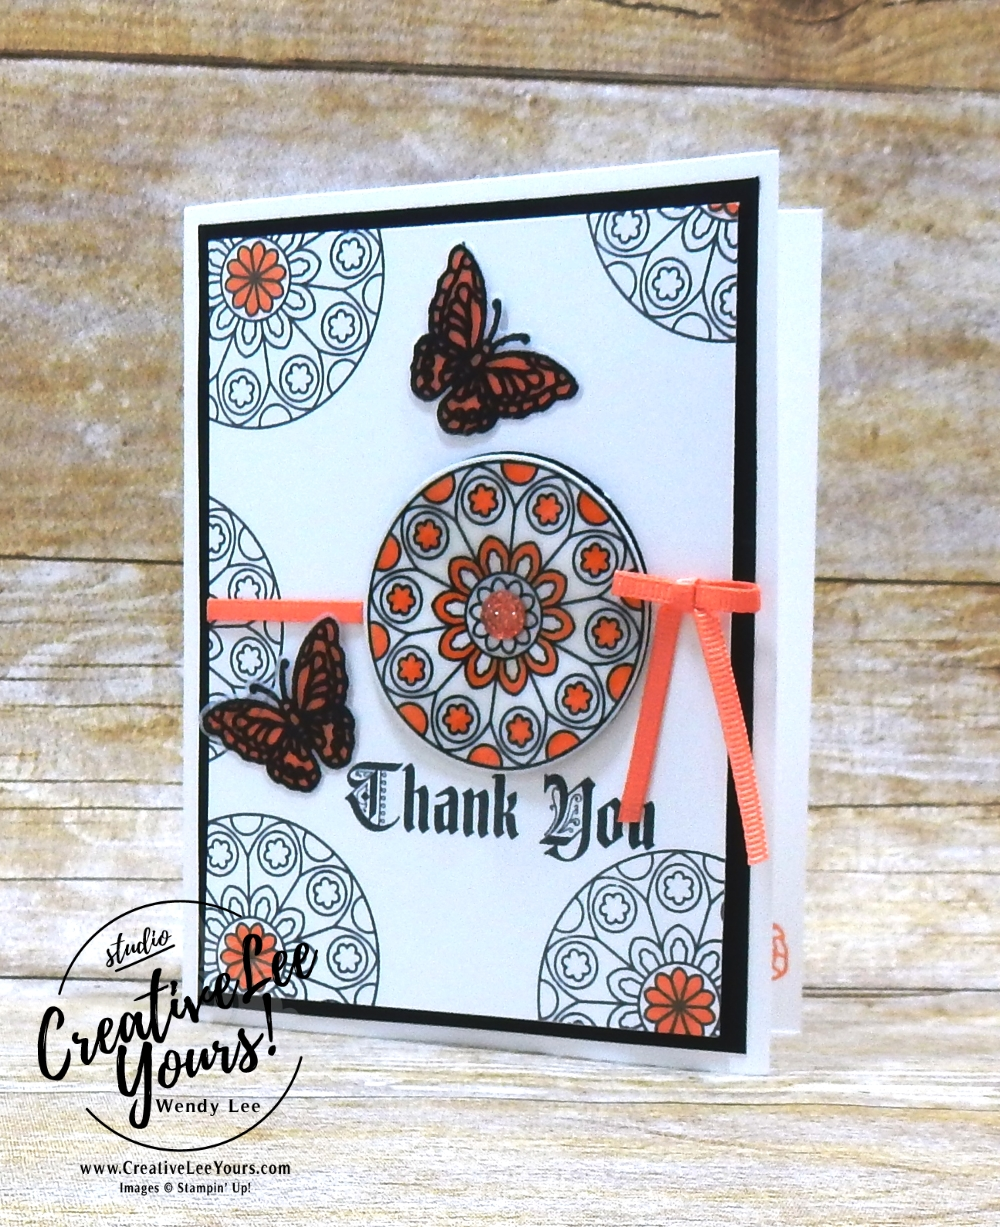 Stained Glass Thank You by jennifer hamlin cardmaking, handmade card, rubber stamps, stamping, stampin up, wendy Lee, #creativeleeyours, creatively yours, creative-lee yours, SU, SU cards, painted glass stamp set, birthday, thank you, diemonds team swap